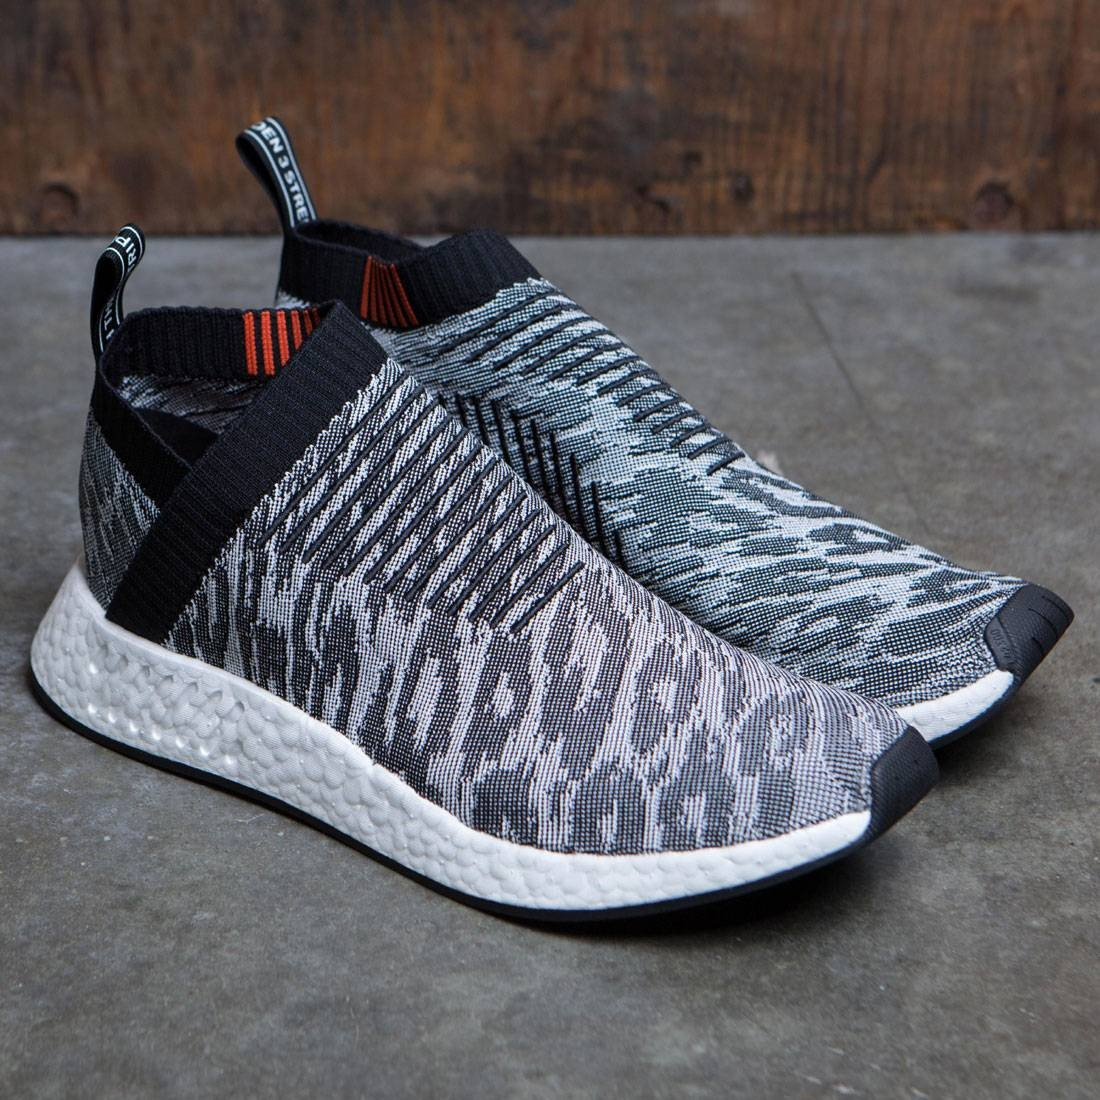 check out 0d576 93826 Adidas NMD City Sock 1 (BLACK) for sale in Homestead, FL